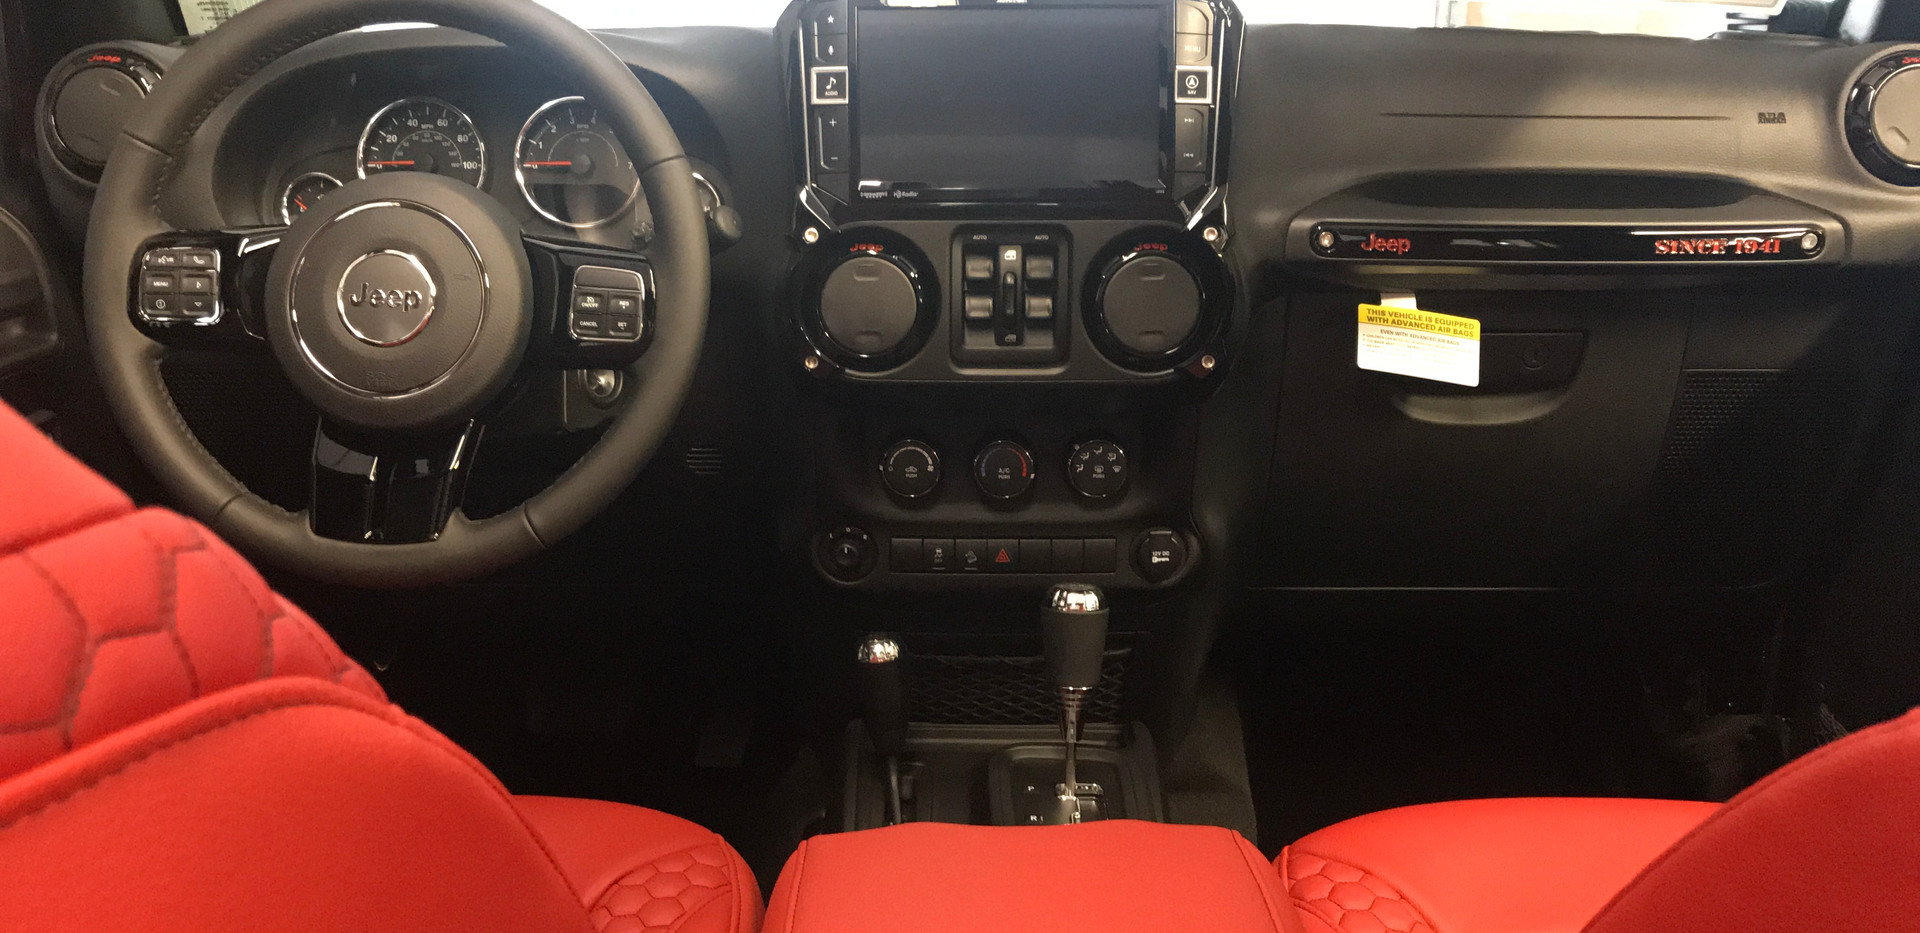 Red and Black Jeep Interior